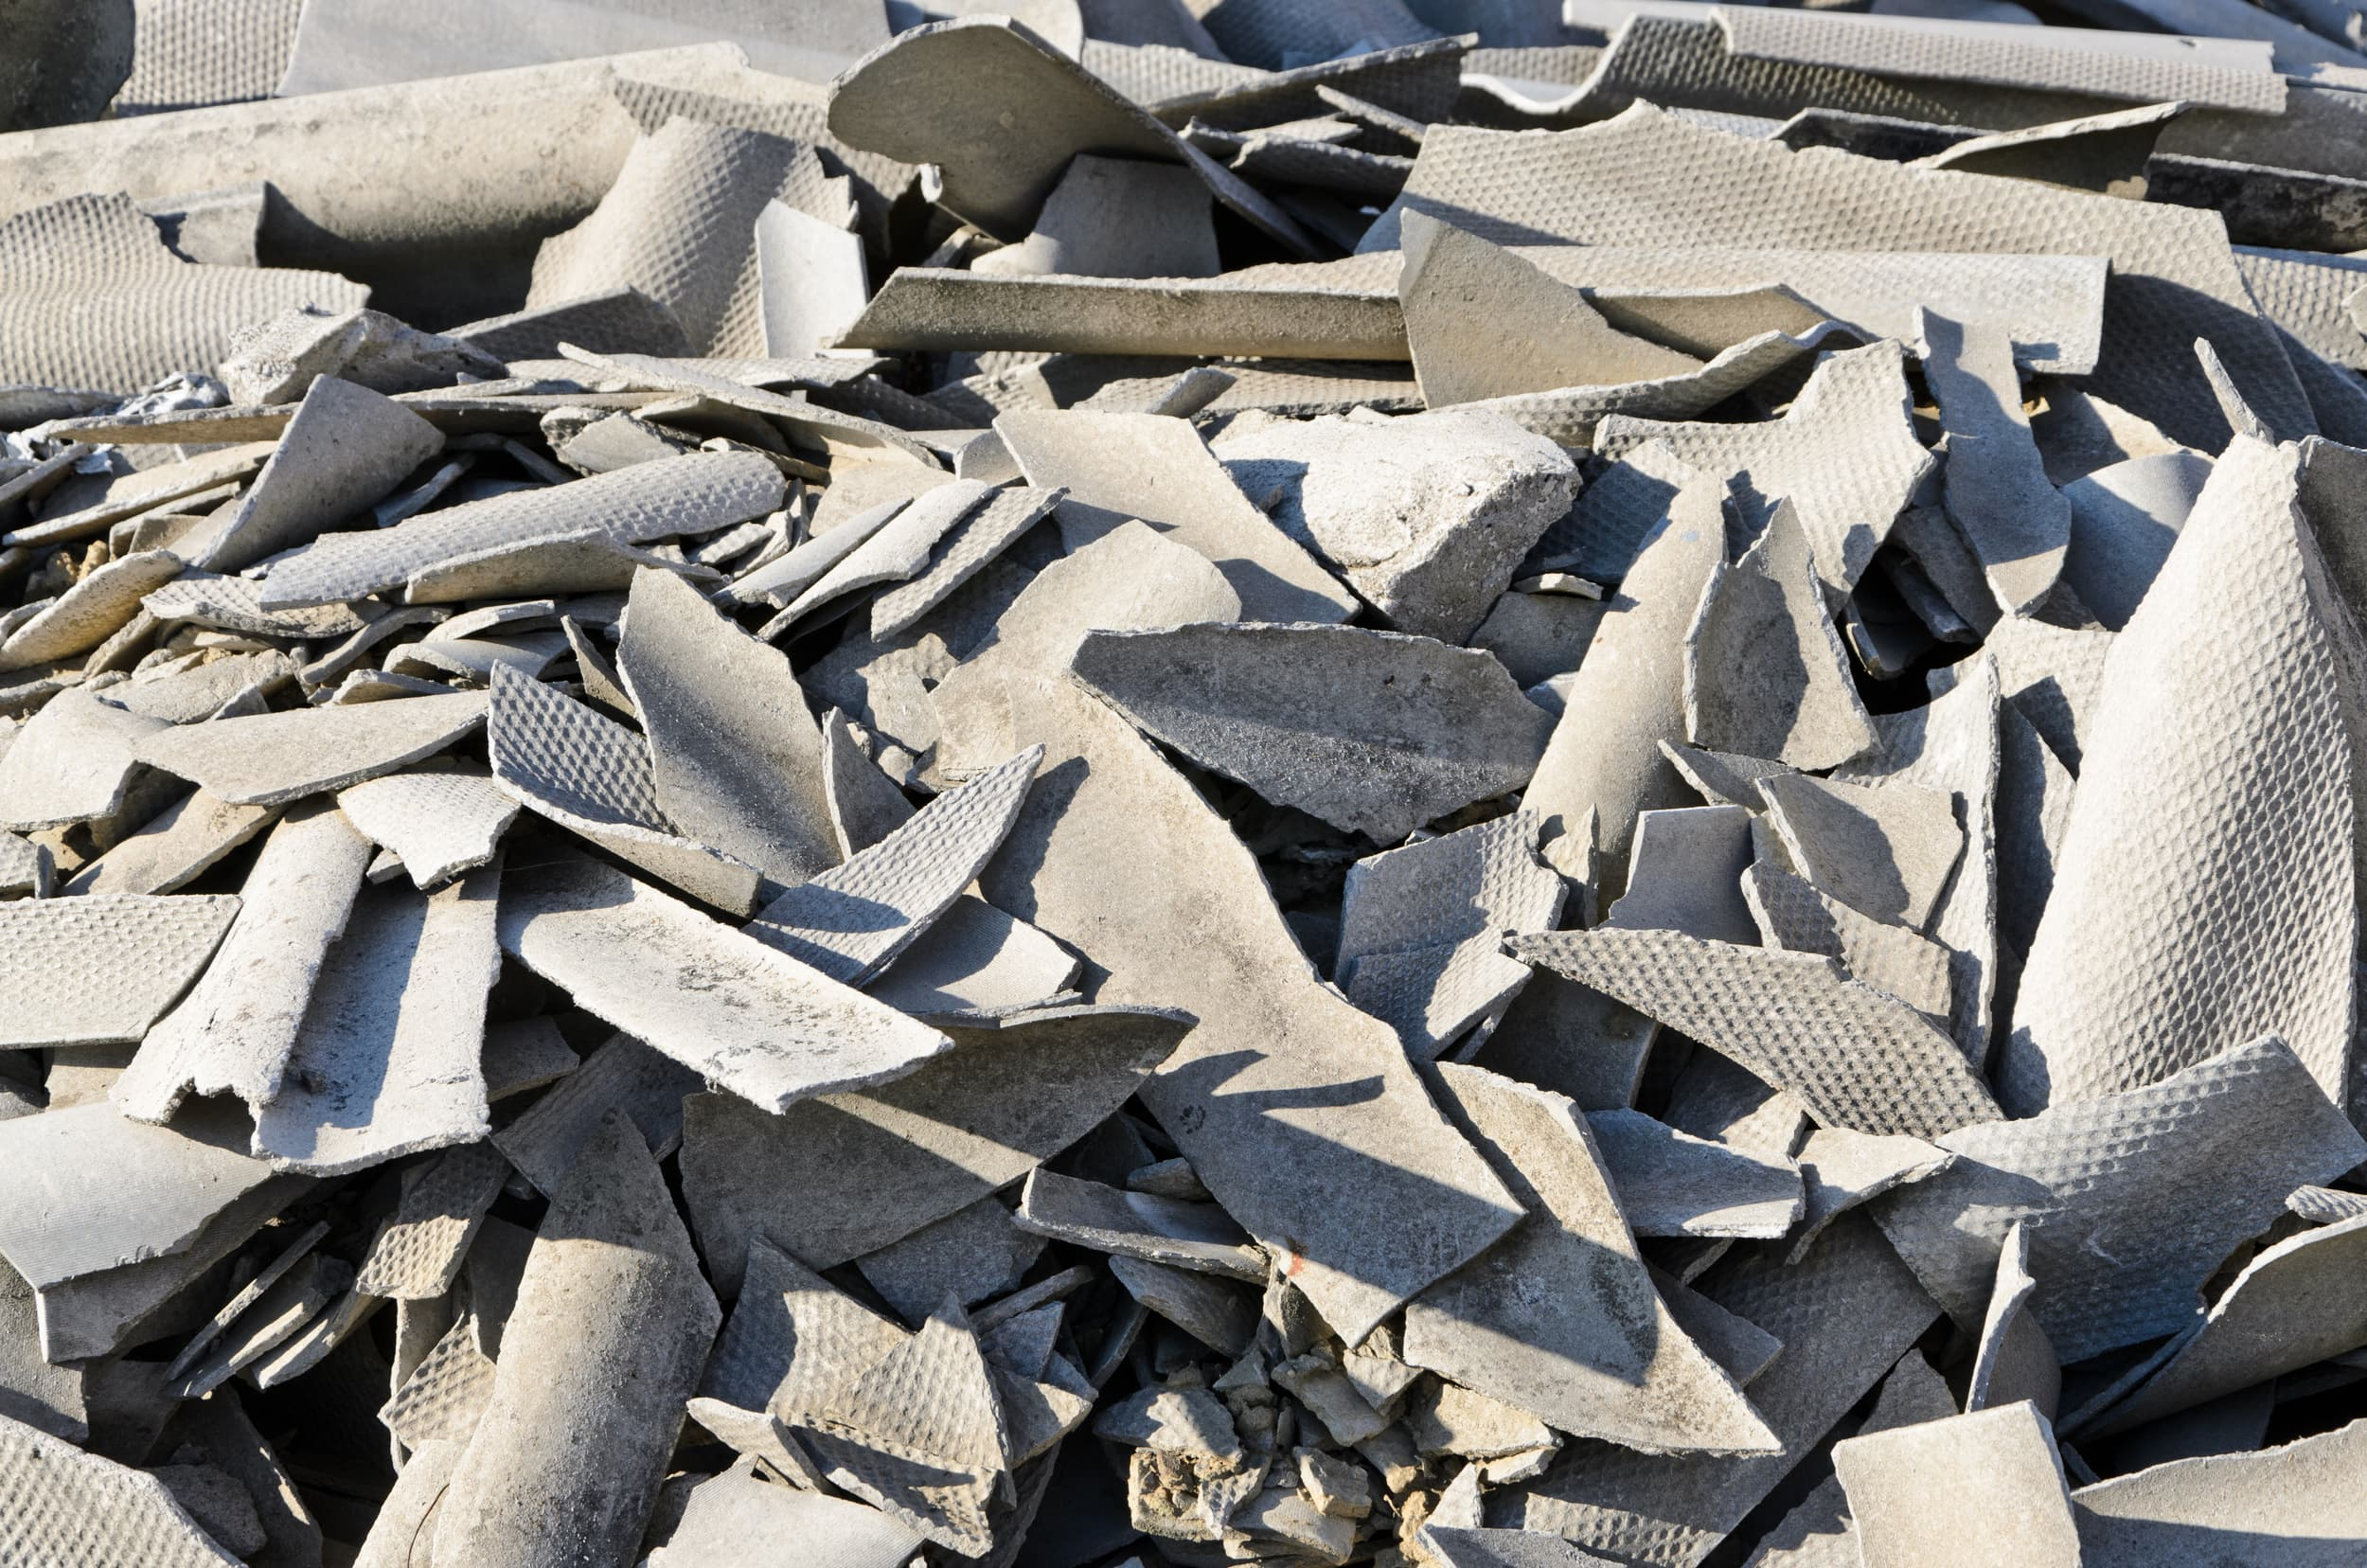 Compliance Training Online Canada Construction Asbestos Safety course